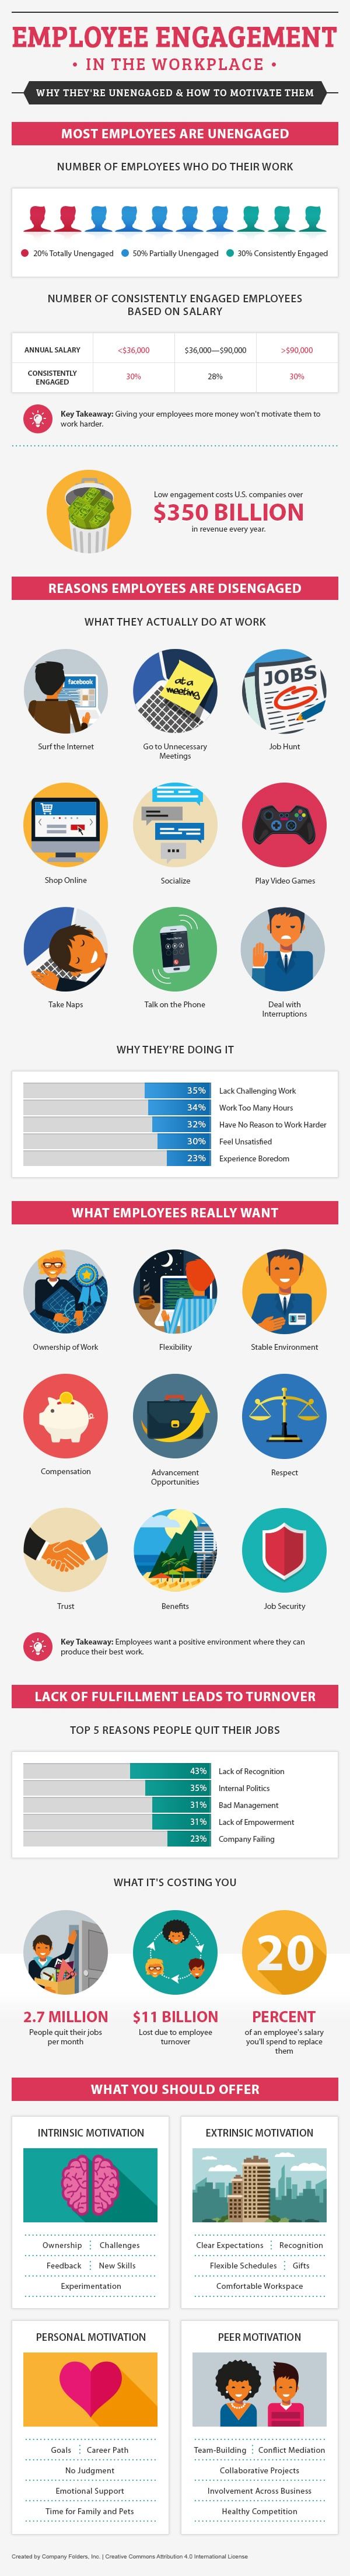 engage your employees